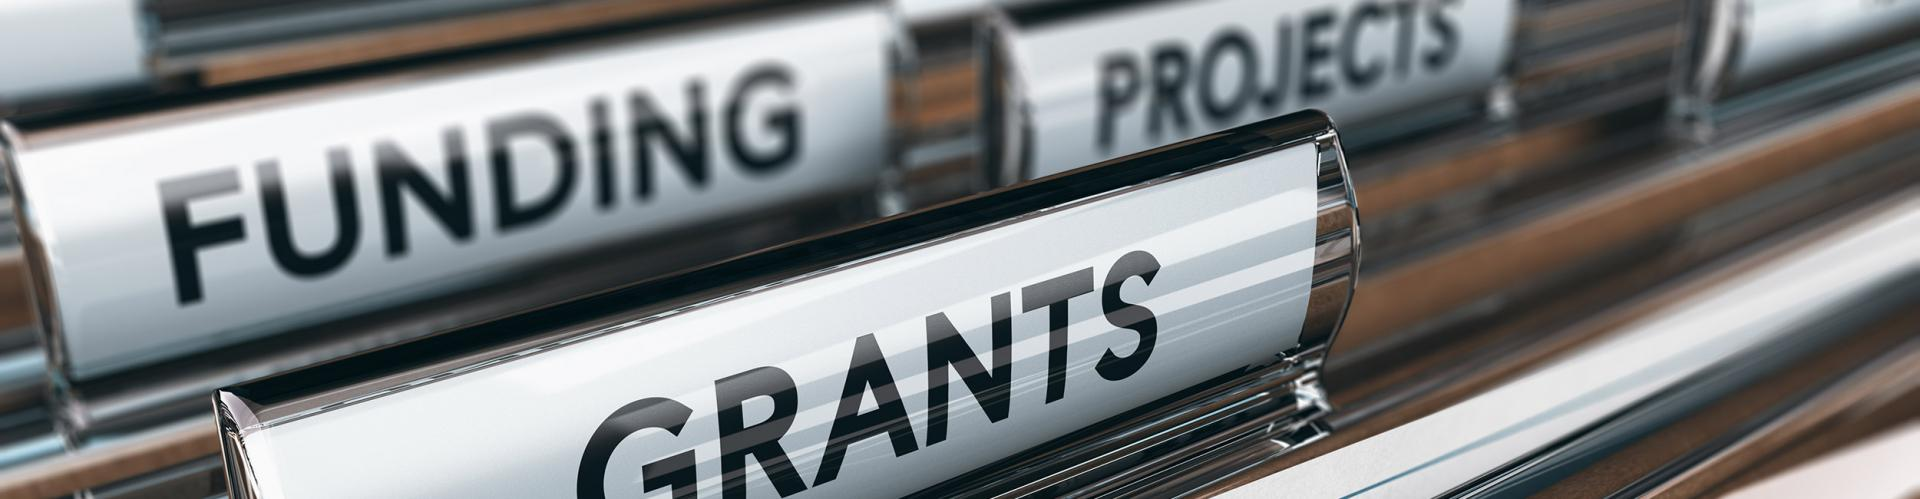 Folders labeled Funding, Projects, Grants